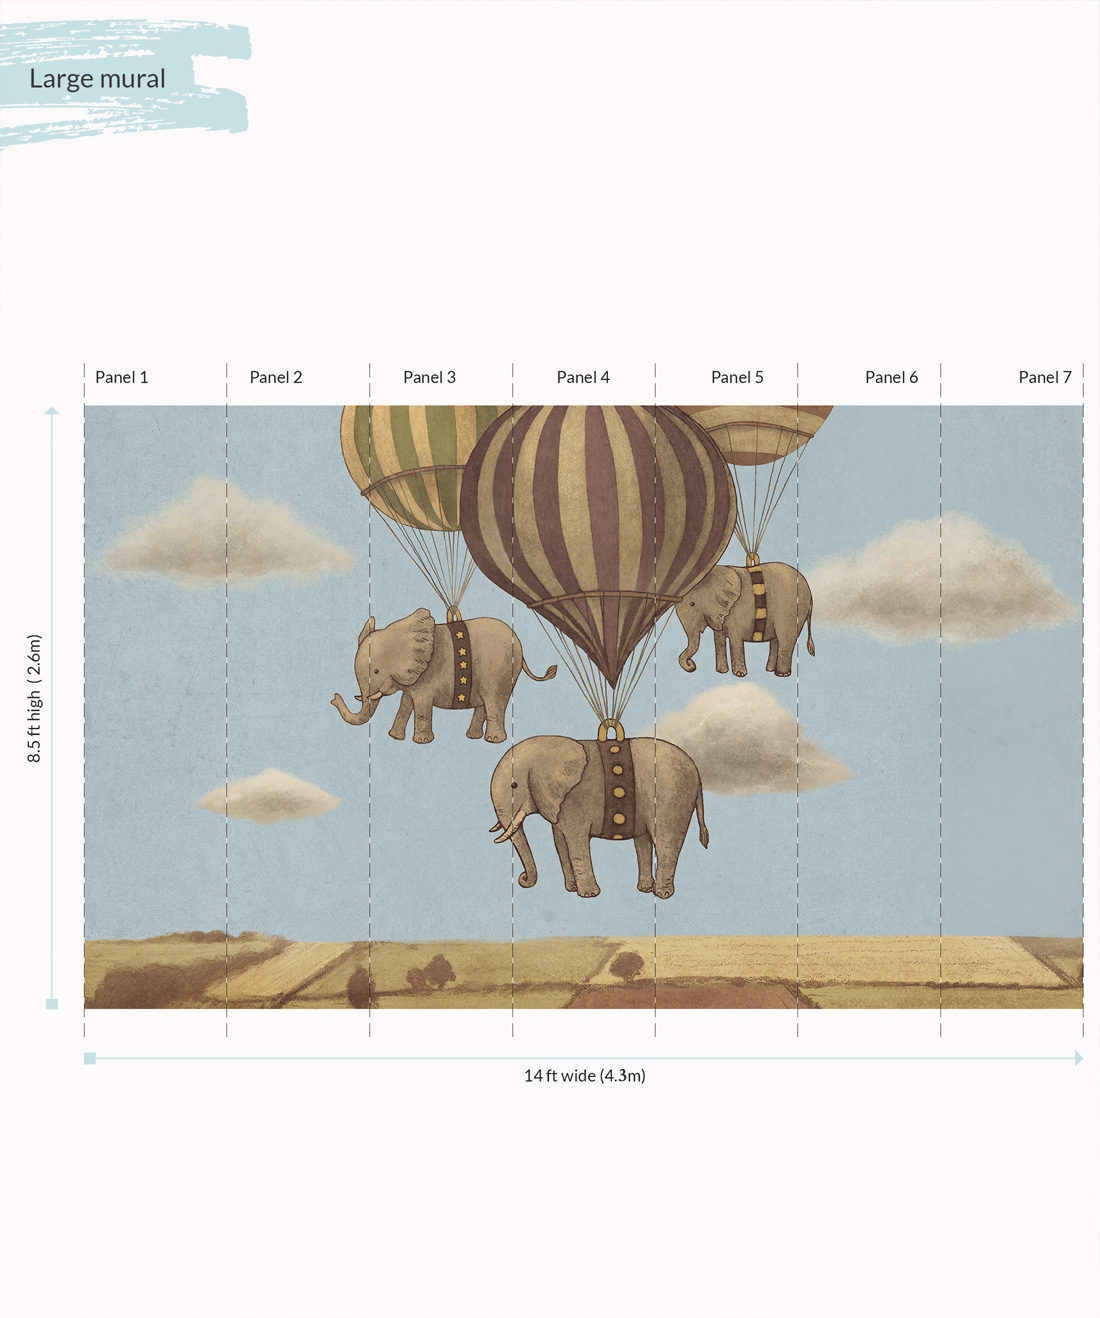 Flight of the Elephants Wall Mural - Large